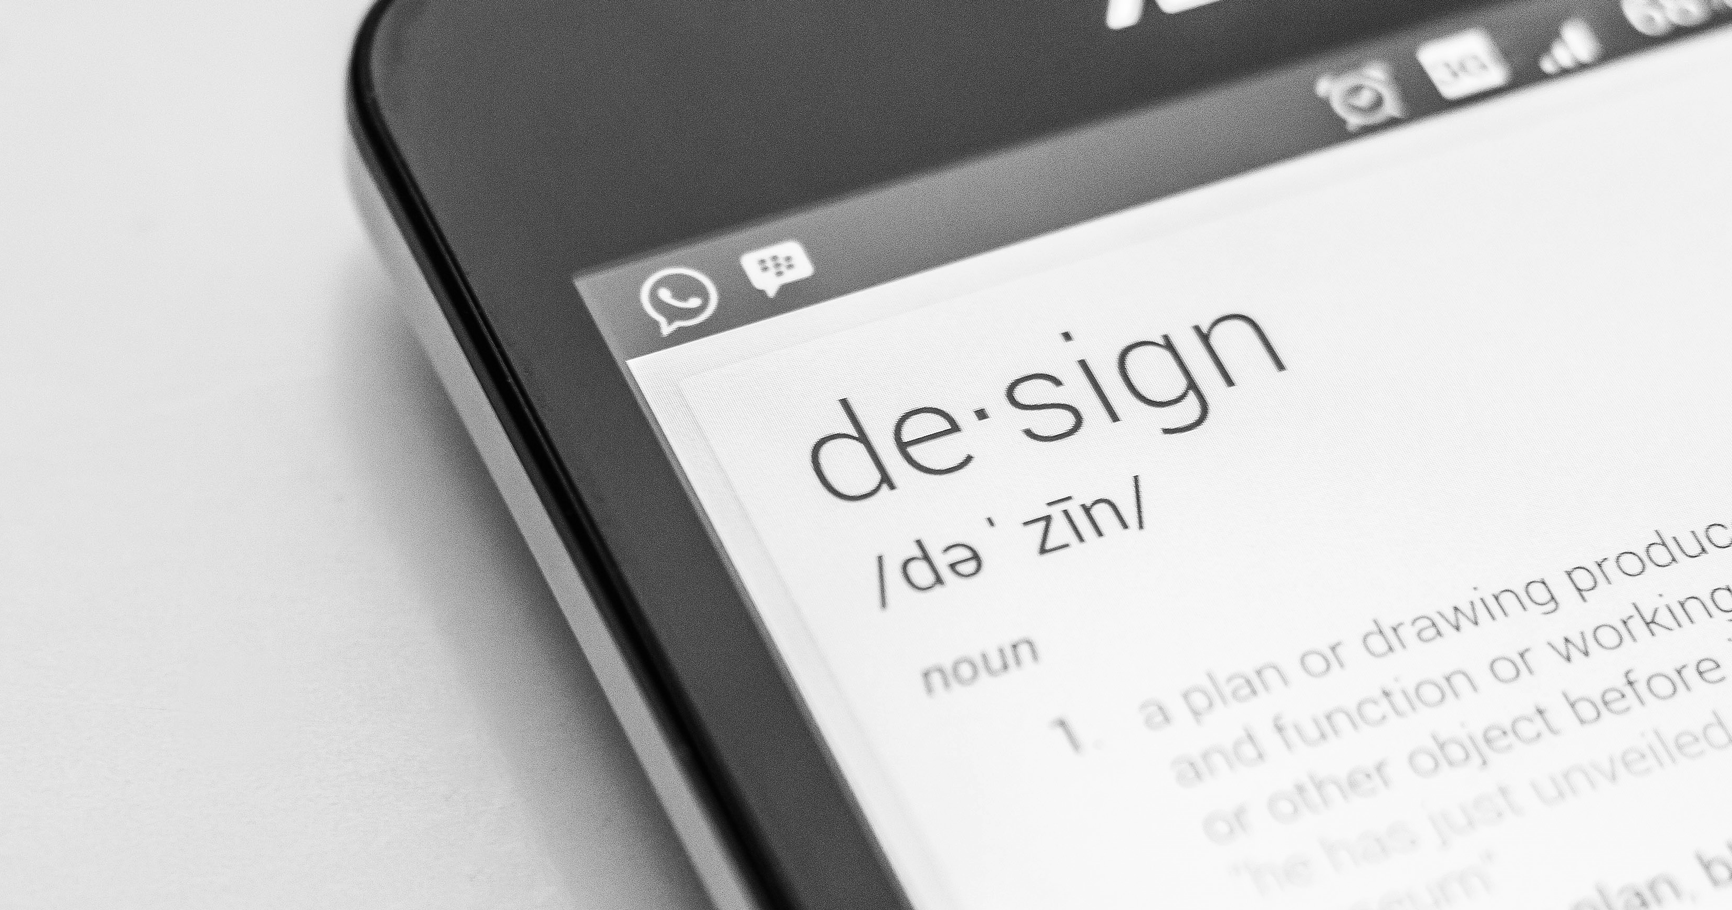 User friendly interfaces